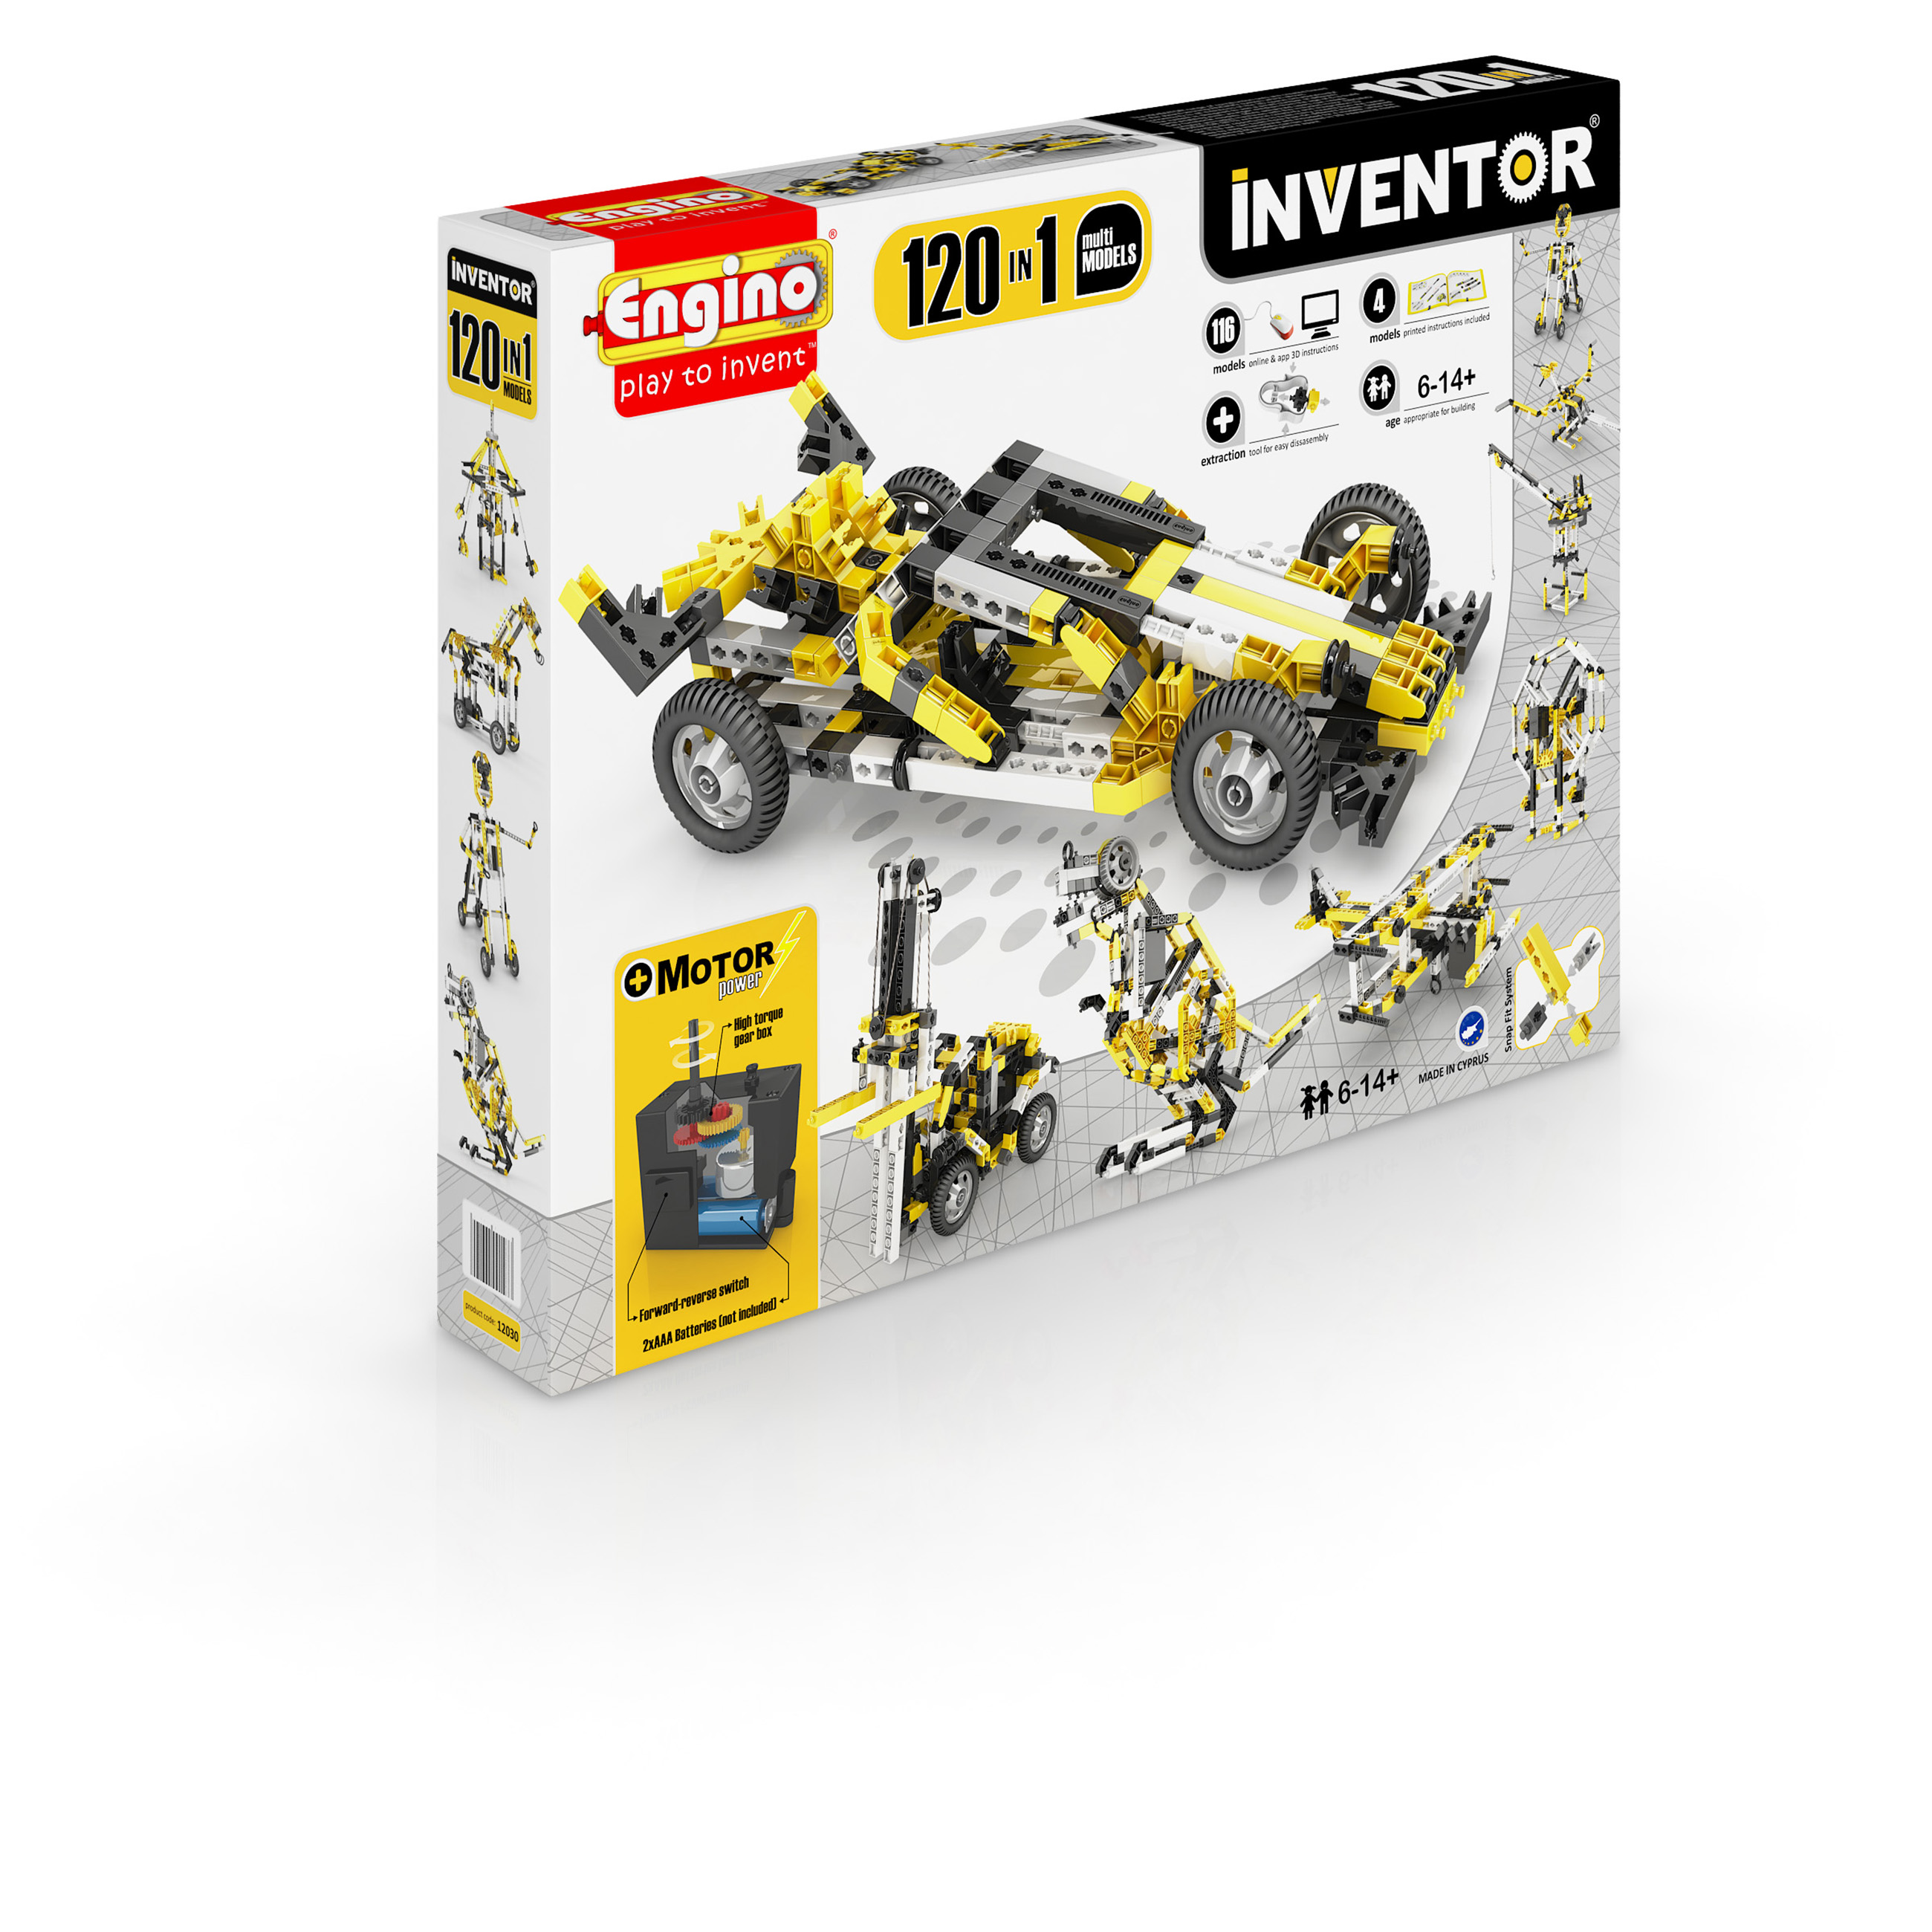 Engino Inventor 120 in 1 Models Building Motorized Set Multi Models by Engino